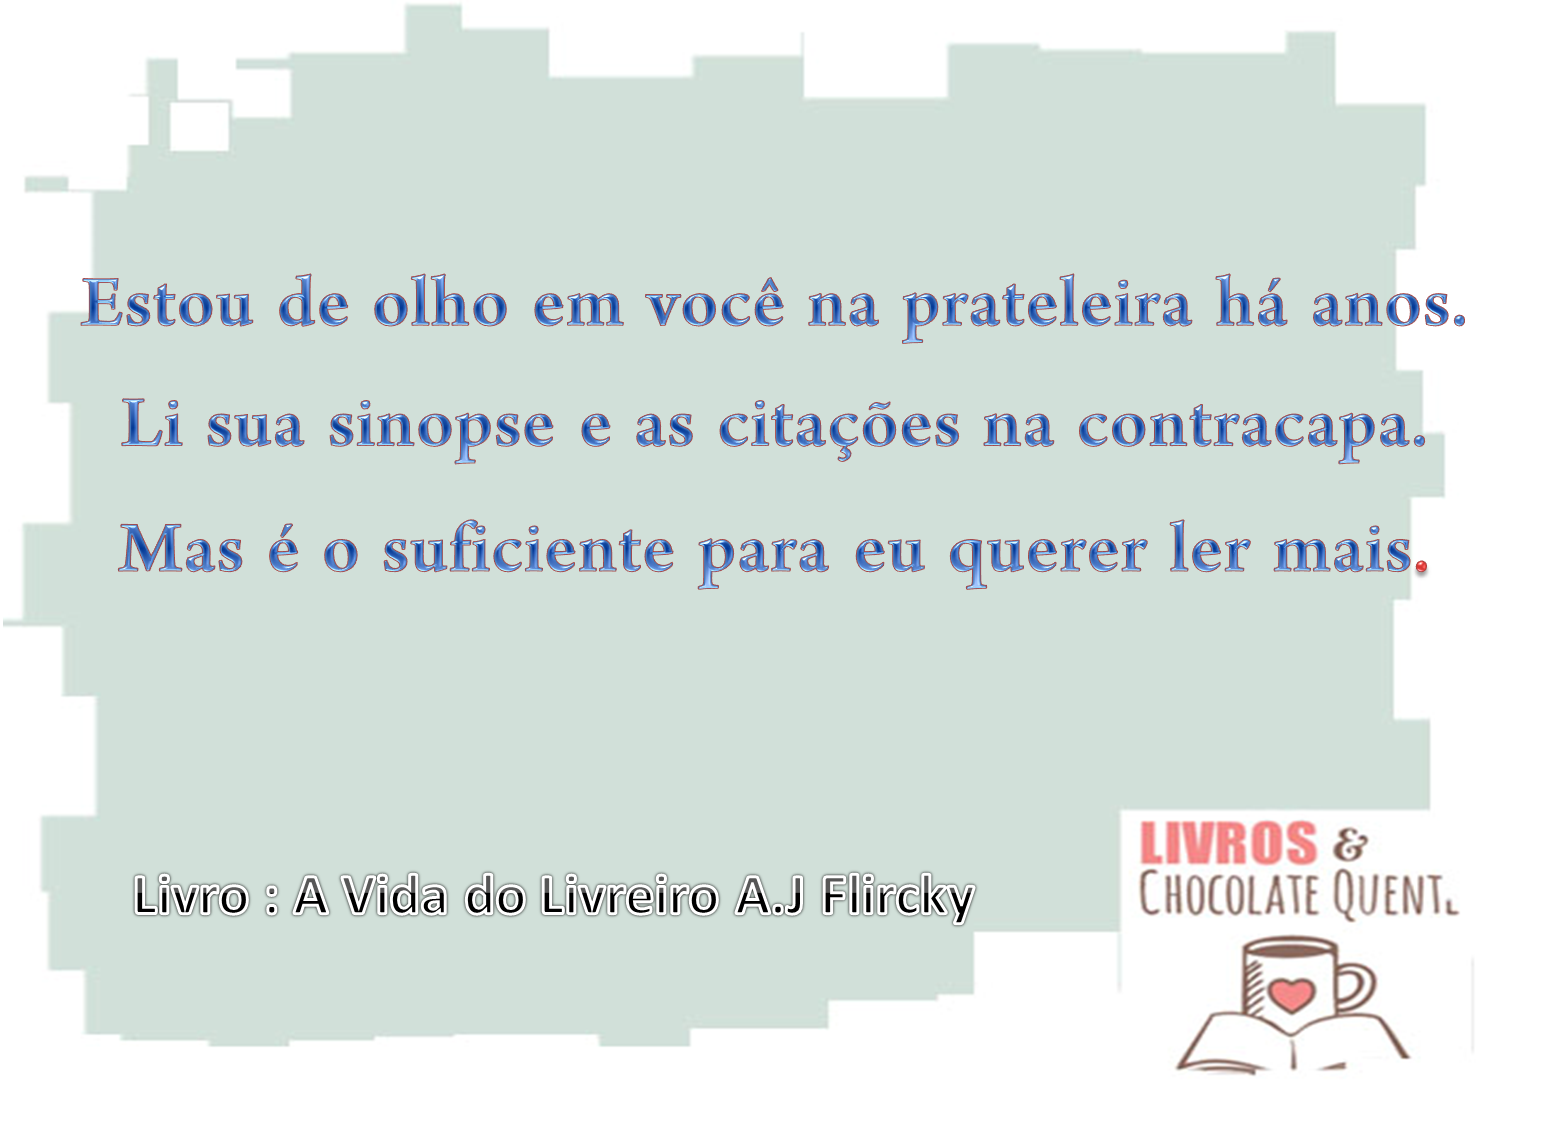 quotes A Vida do Livreiro A.J Flirkry